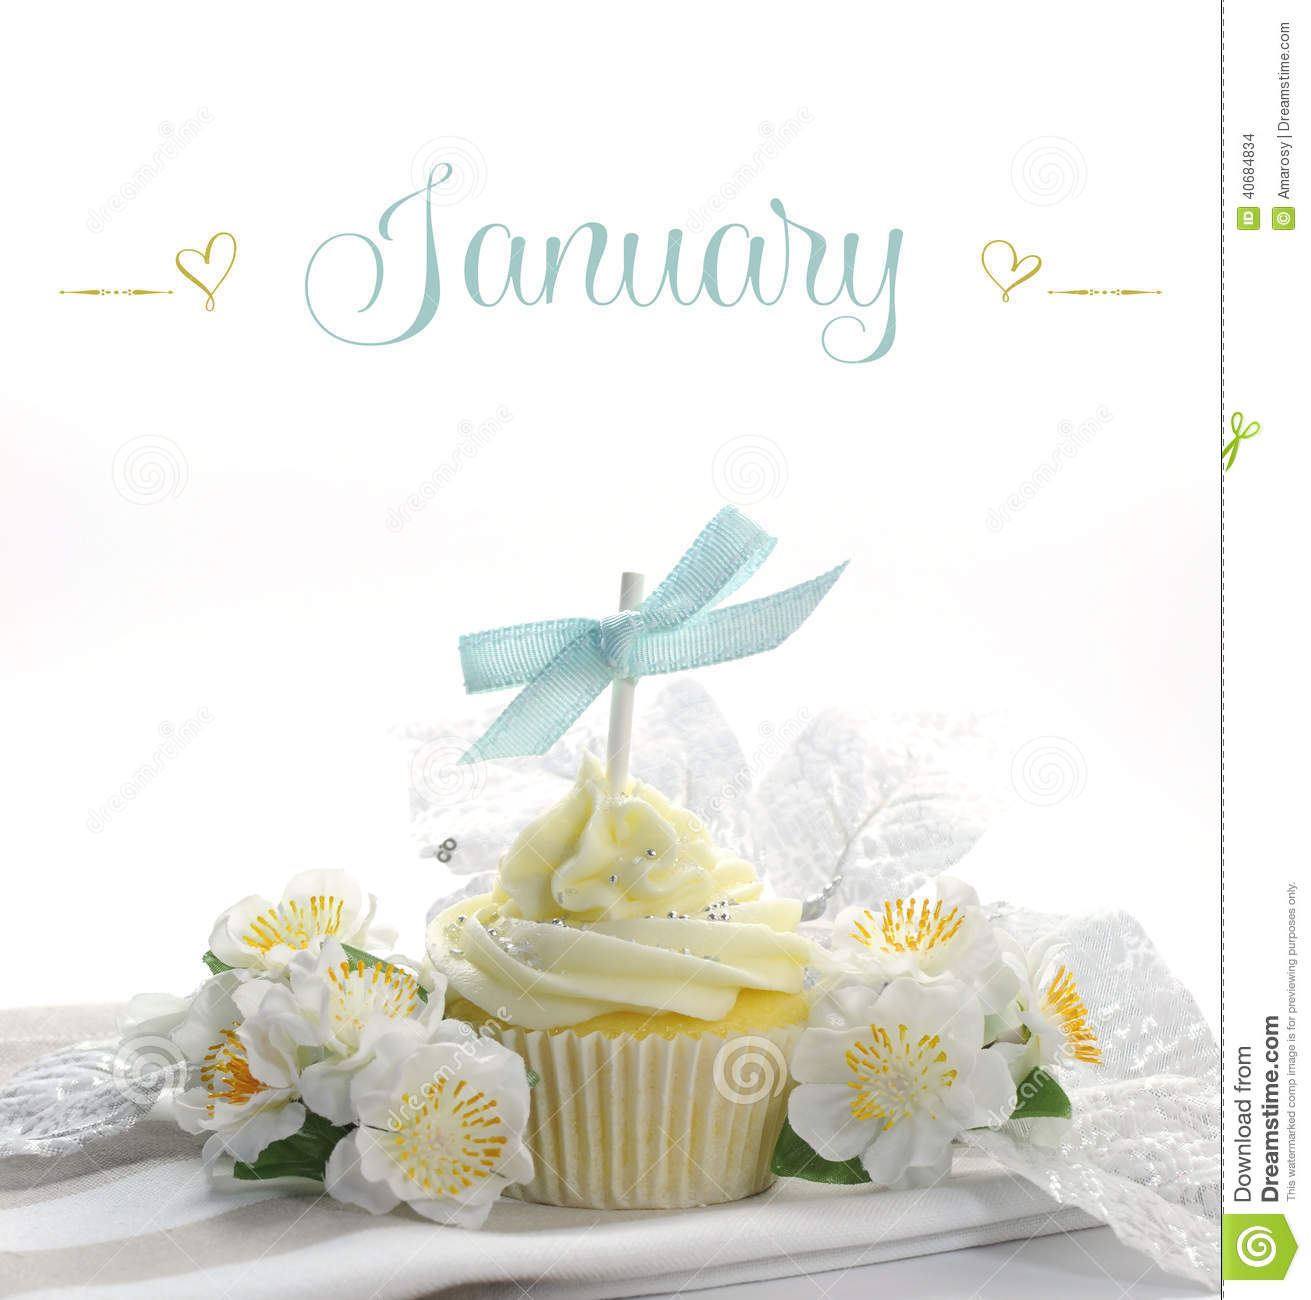 Beautiful White Snow Theme Cupcake With Seasonal Flowers  : beautiful white snow theme cupcake seasonal flowers decorations month january sample text copy space 40684834 from www.dreamstime.com size 1311 x 1300 jpeg 114kB